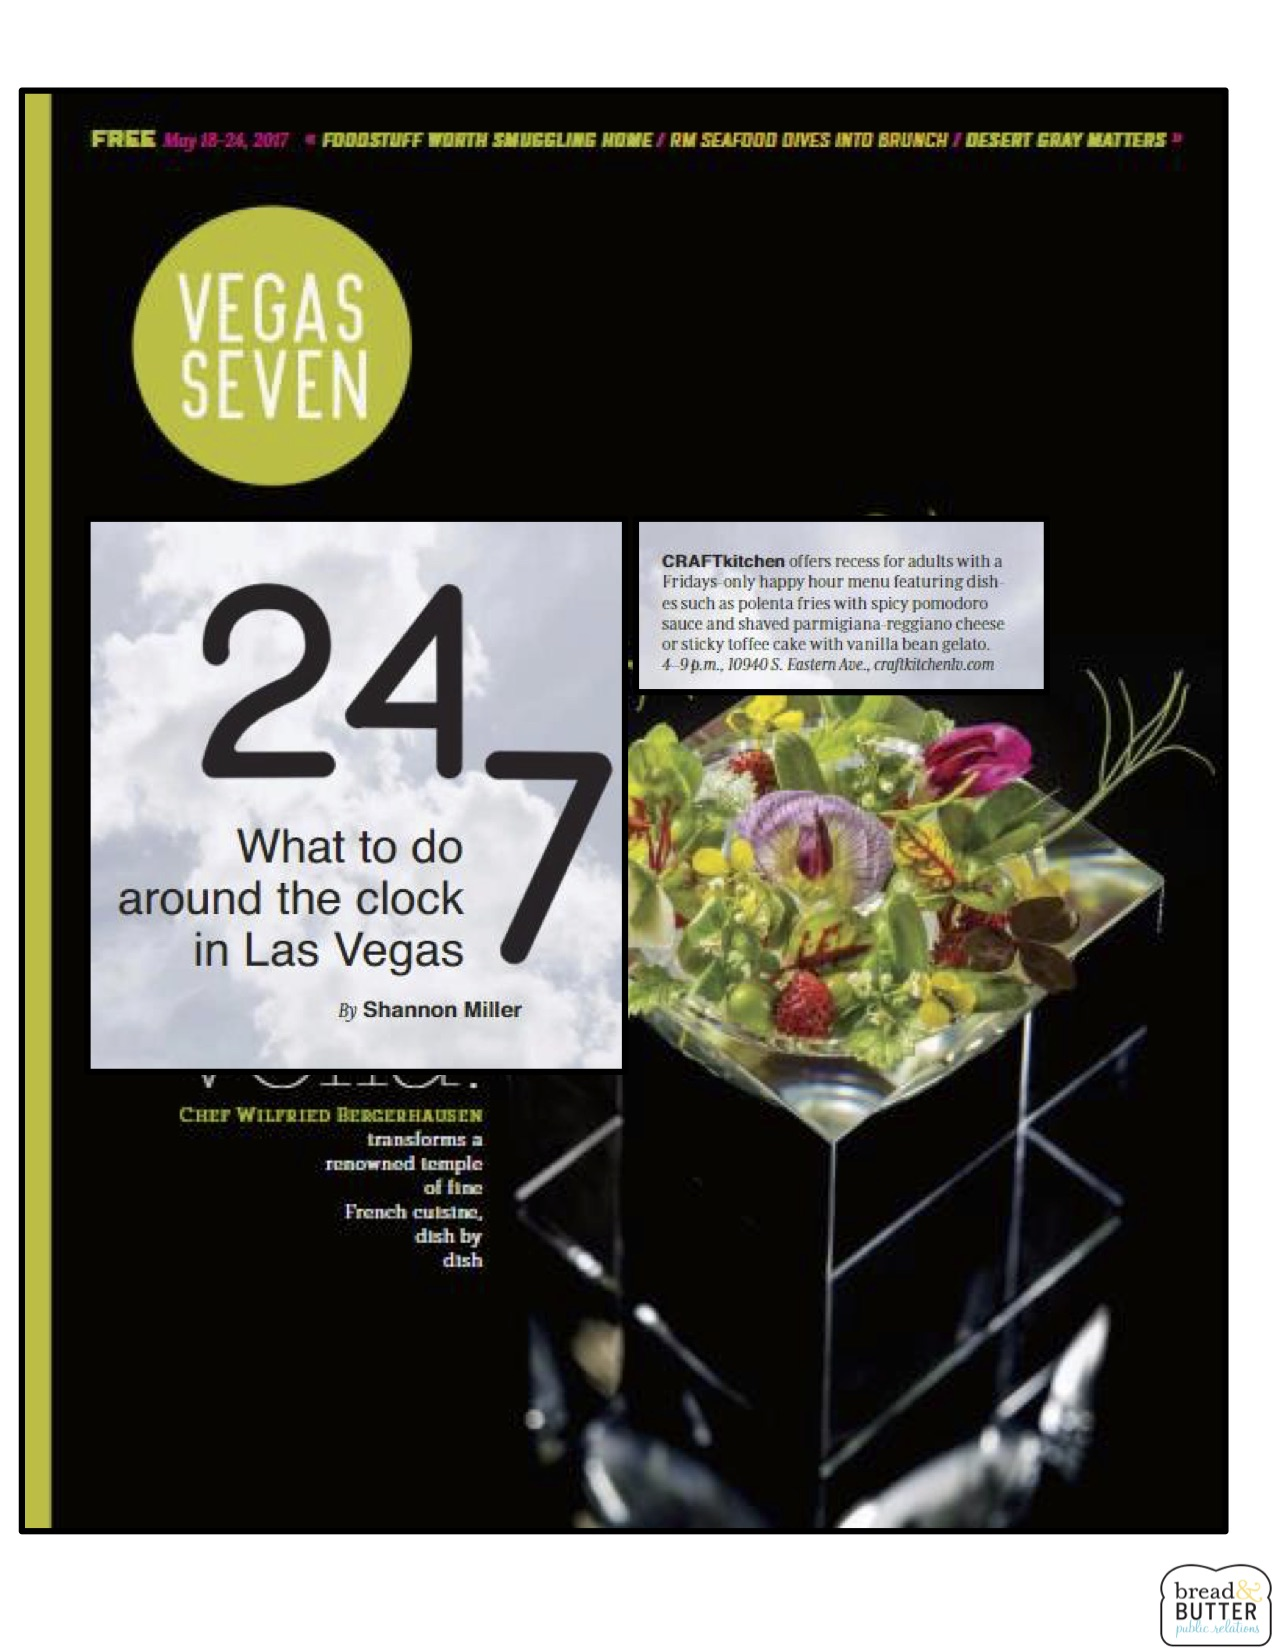 What To Do Around the Clock in Las Vegas